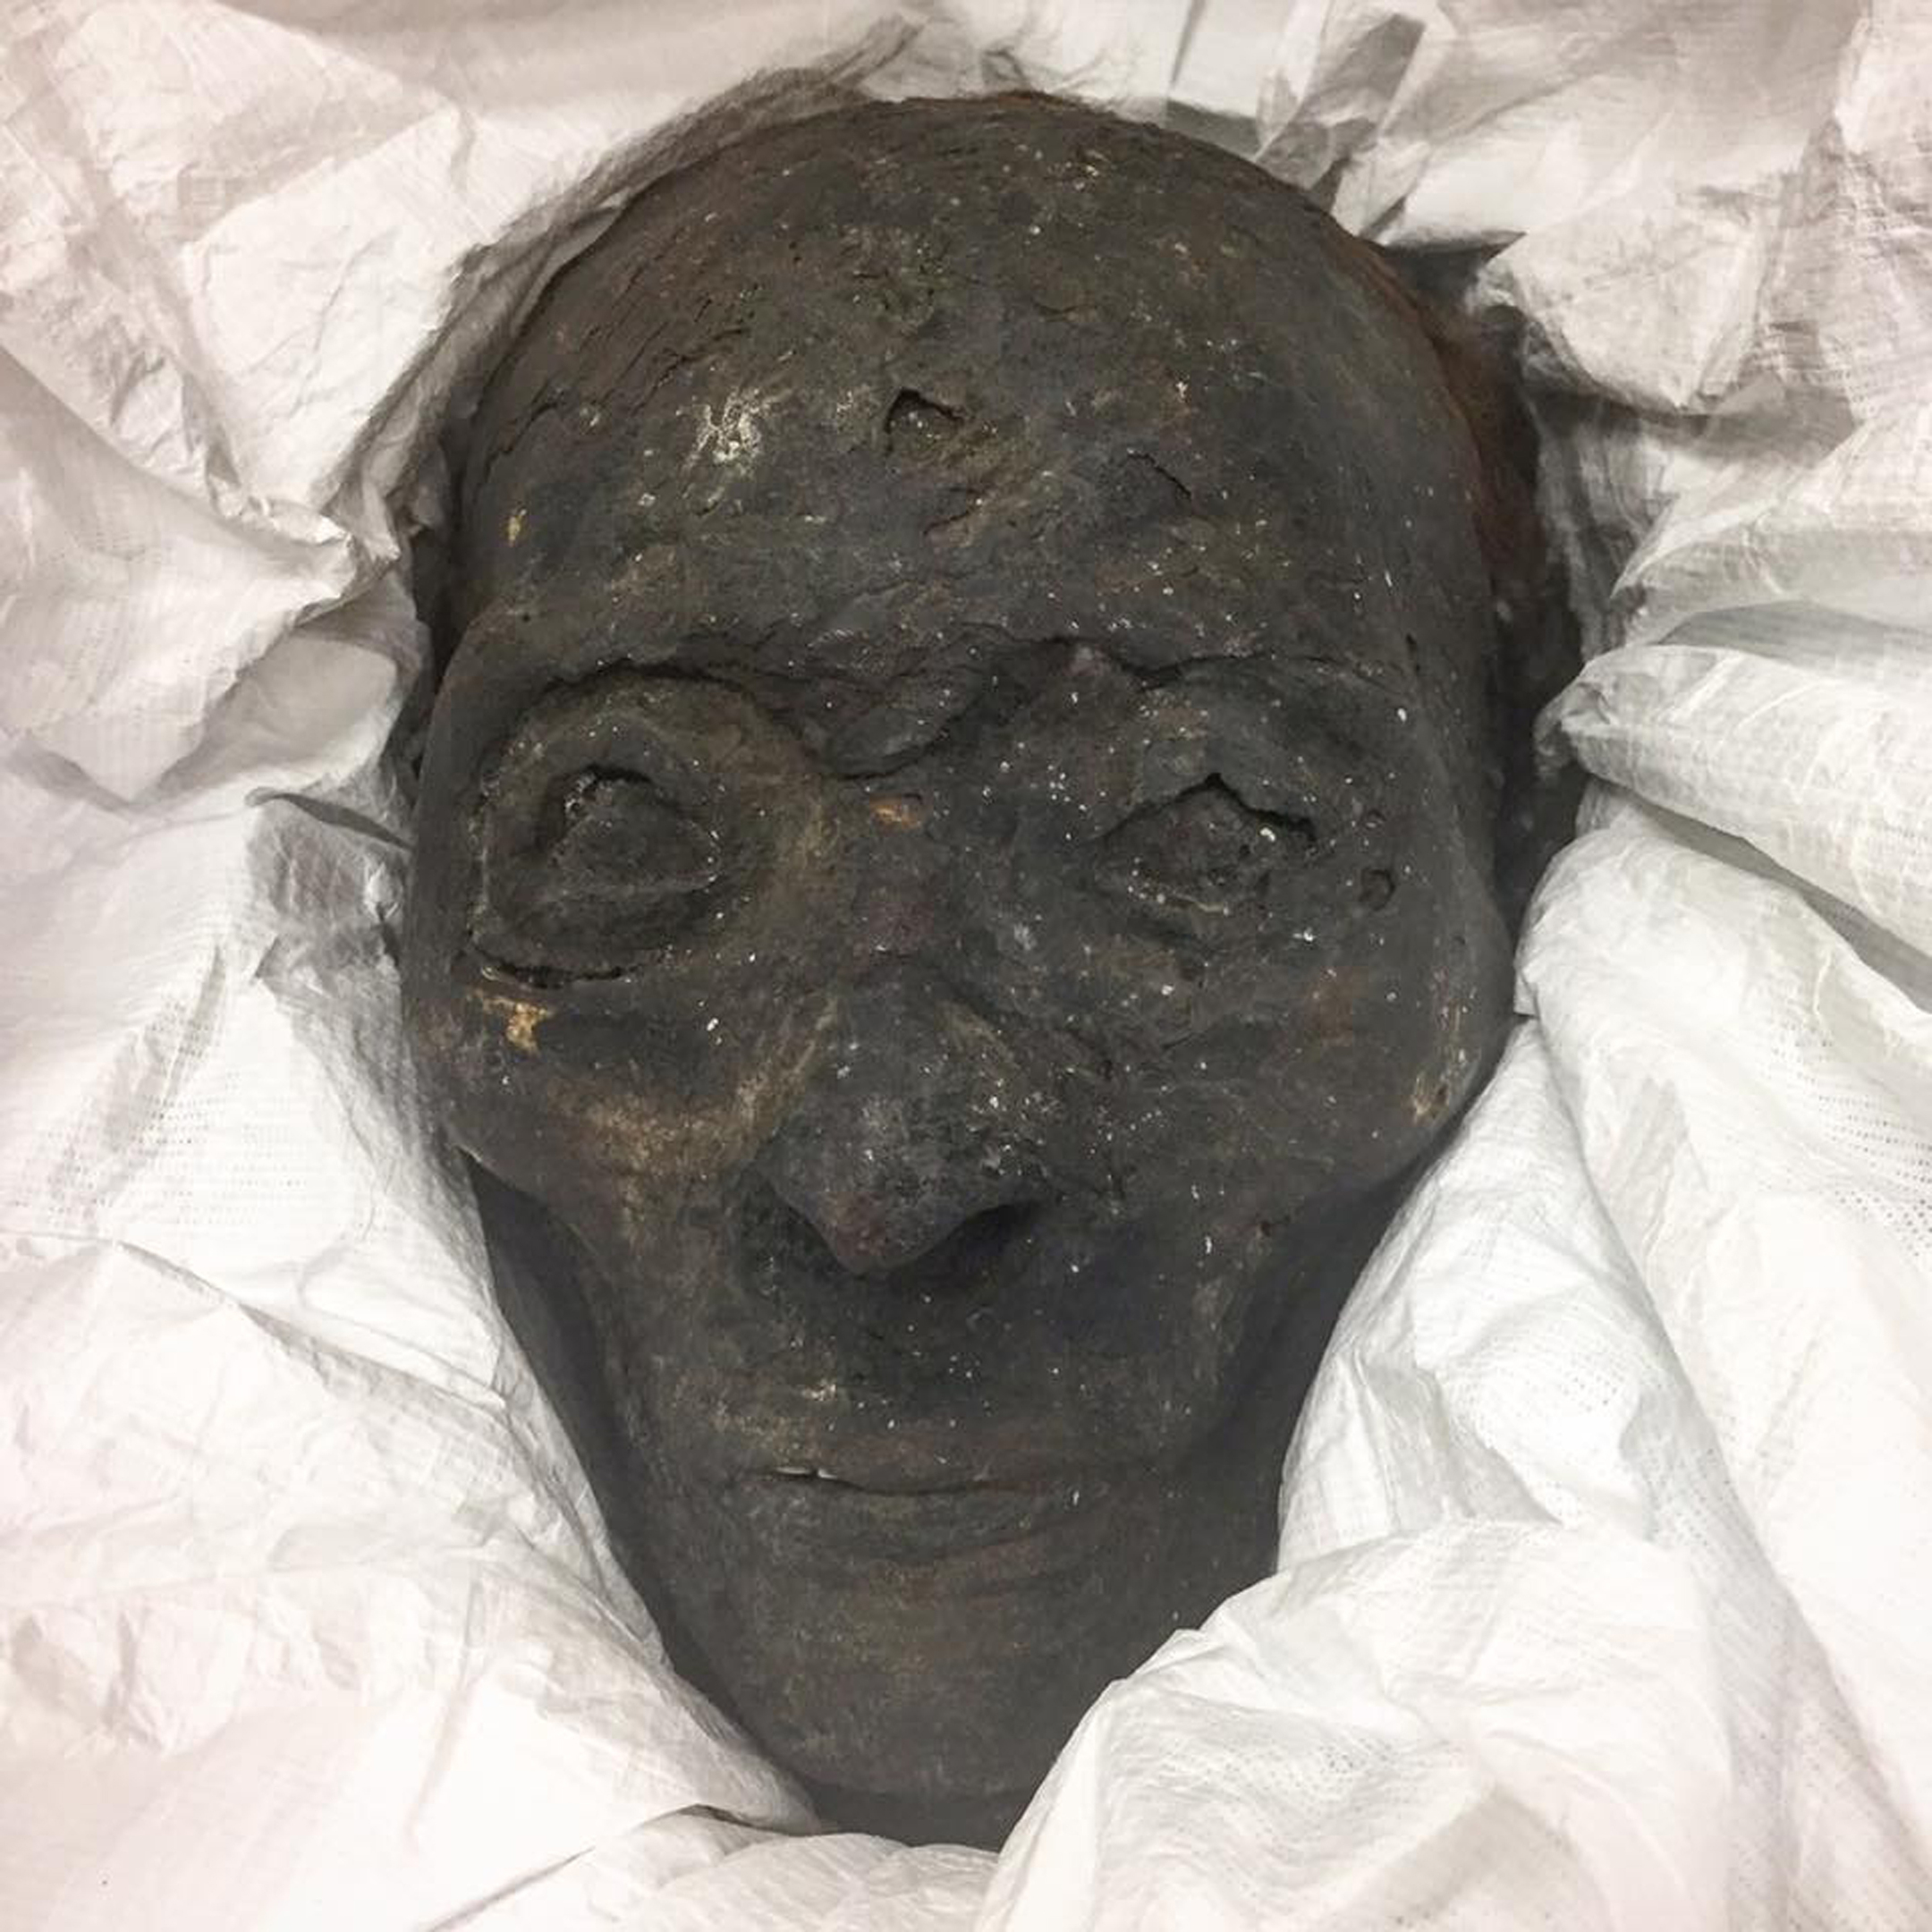 A mummified head, known affectionately as Marlon.